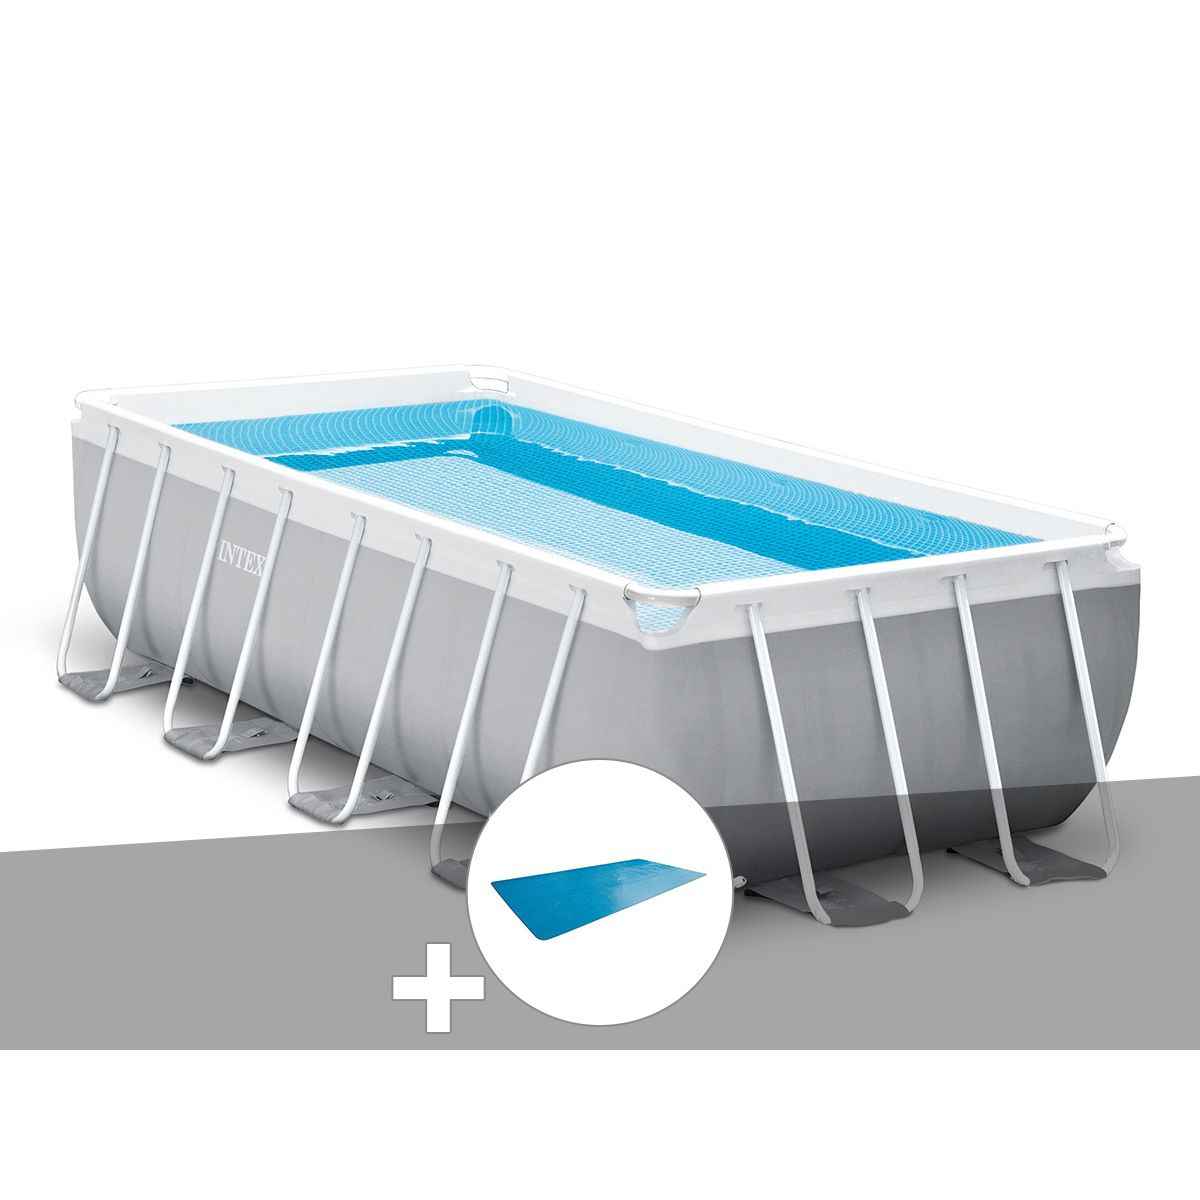 Épinglé Sur Products destiné Bache Piscine Tubulaire